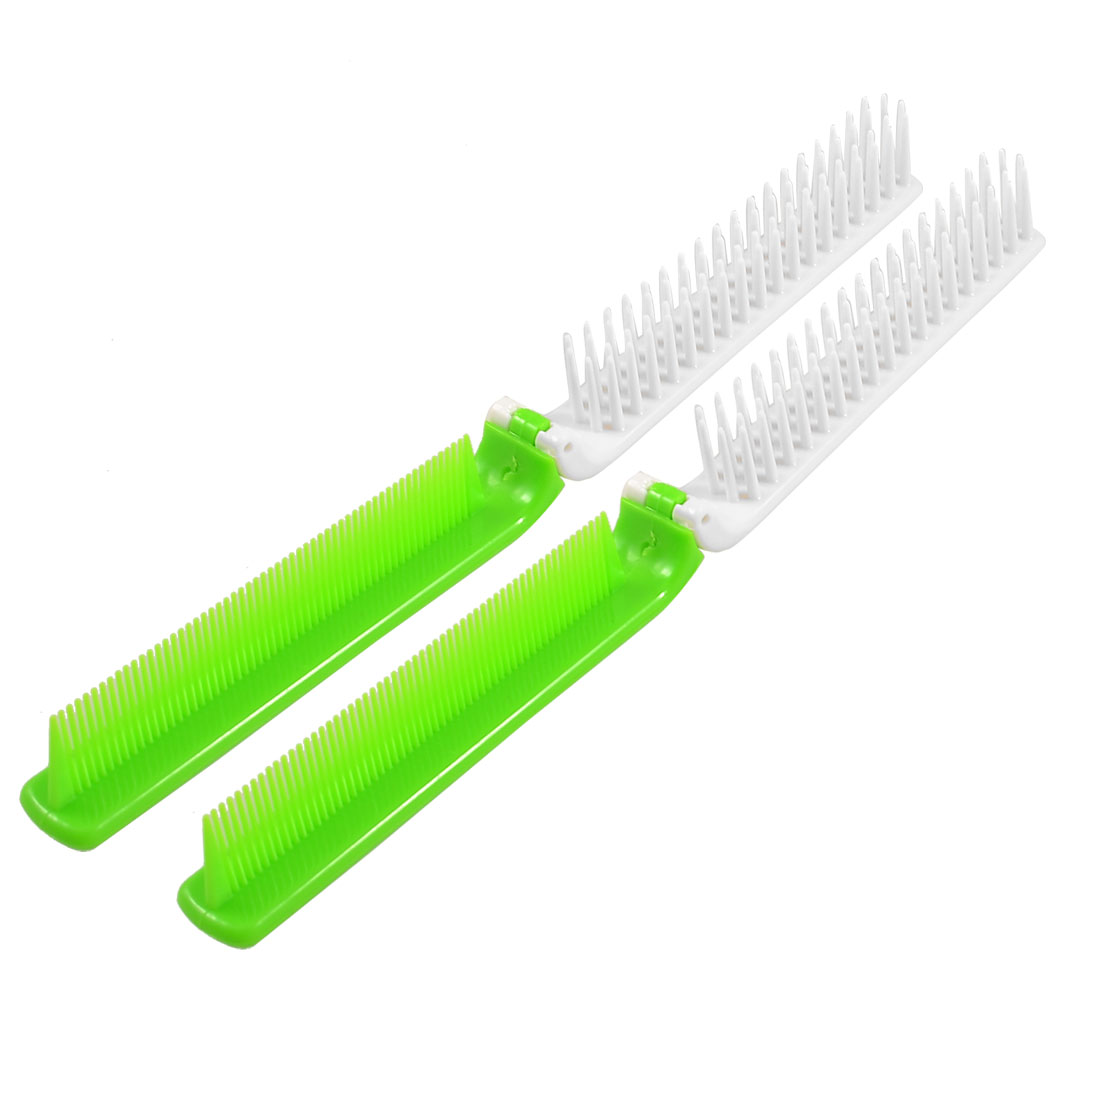 Plastic Coarse Fine Teeth 2 Way Folding Hair Styling Comb Green White 2 Pcs